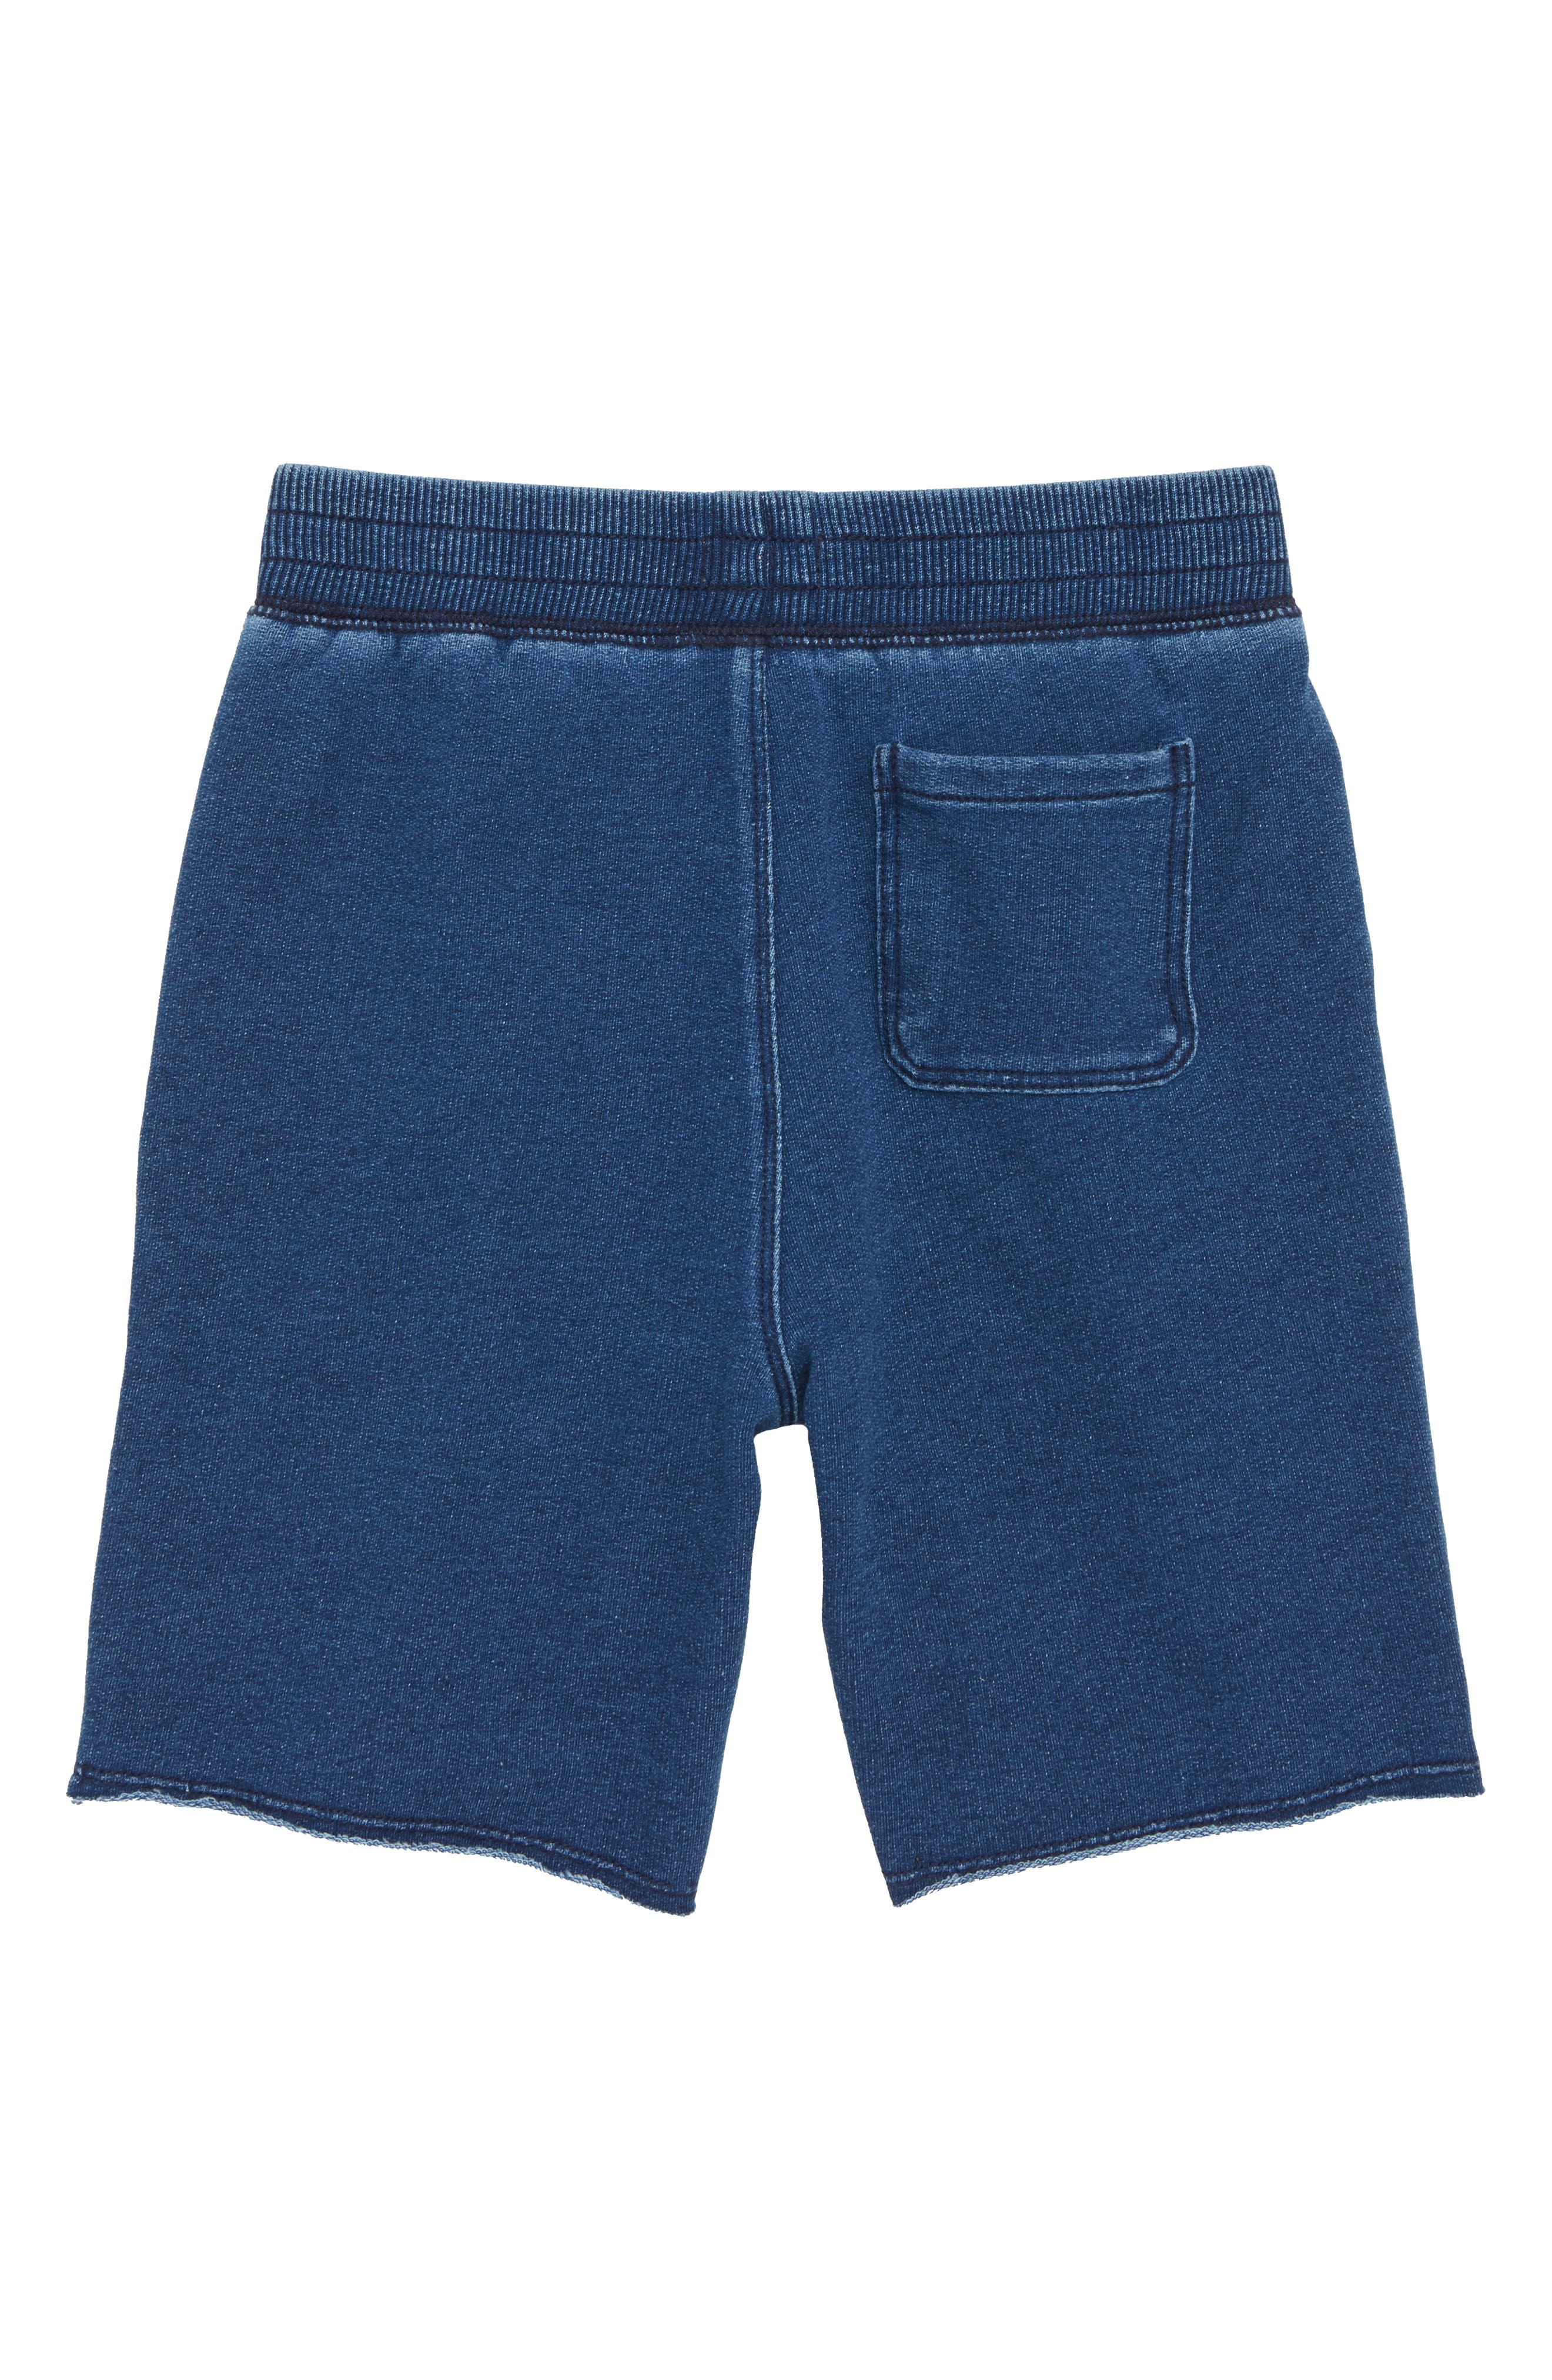 Stonewashed French Terry Shorts,                             Alternate thumbnail 2, color,                             420